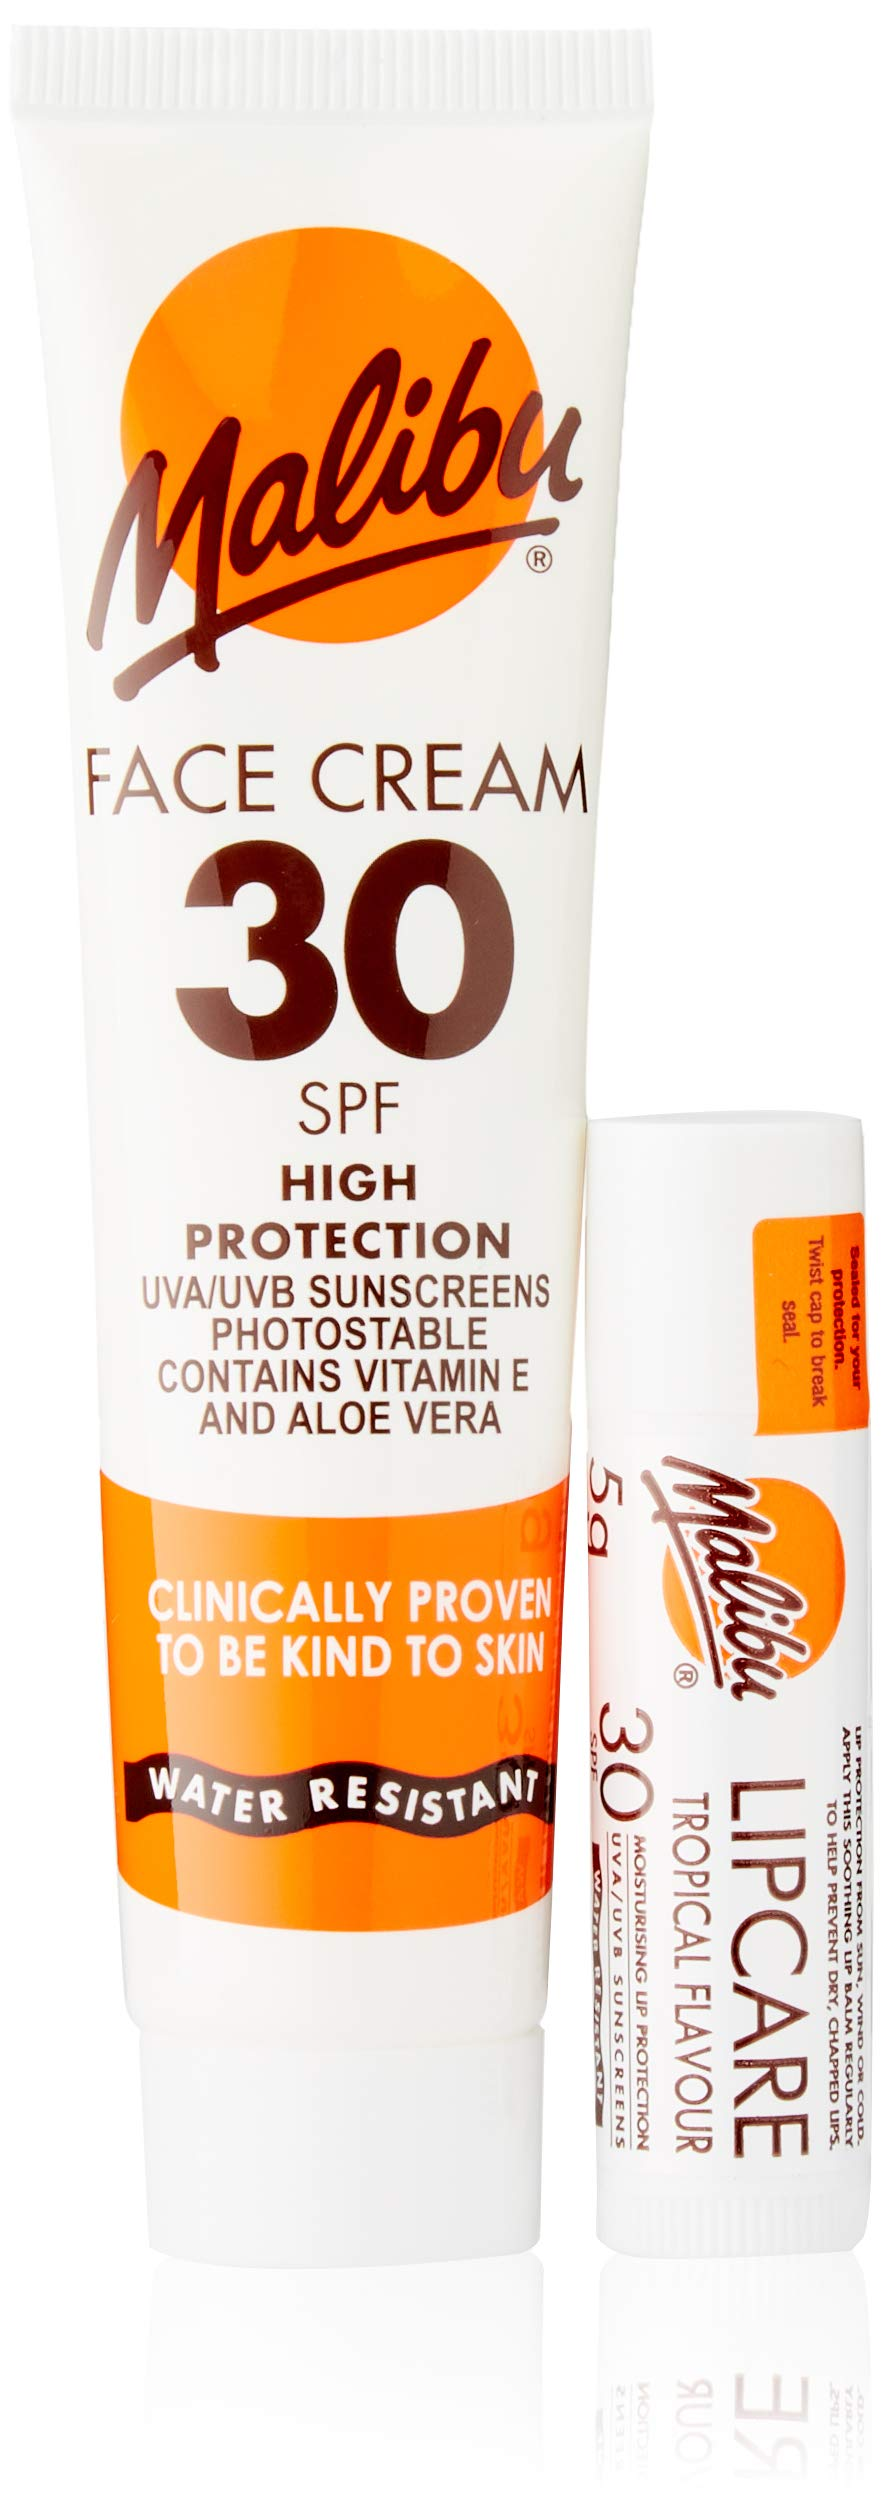 Malibu Duo Pack Sun Protection Face Cream and Lip Balm SPF 30 Water Resistant